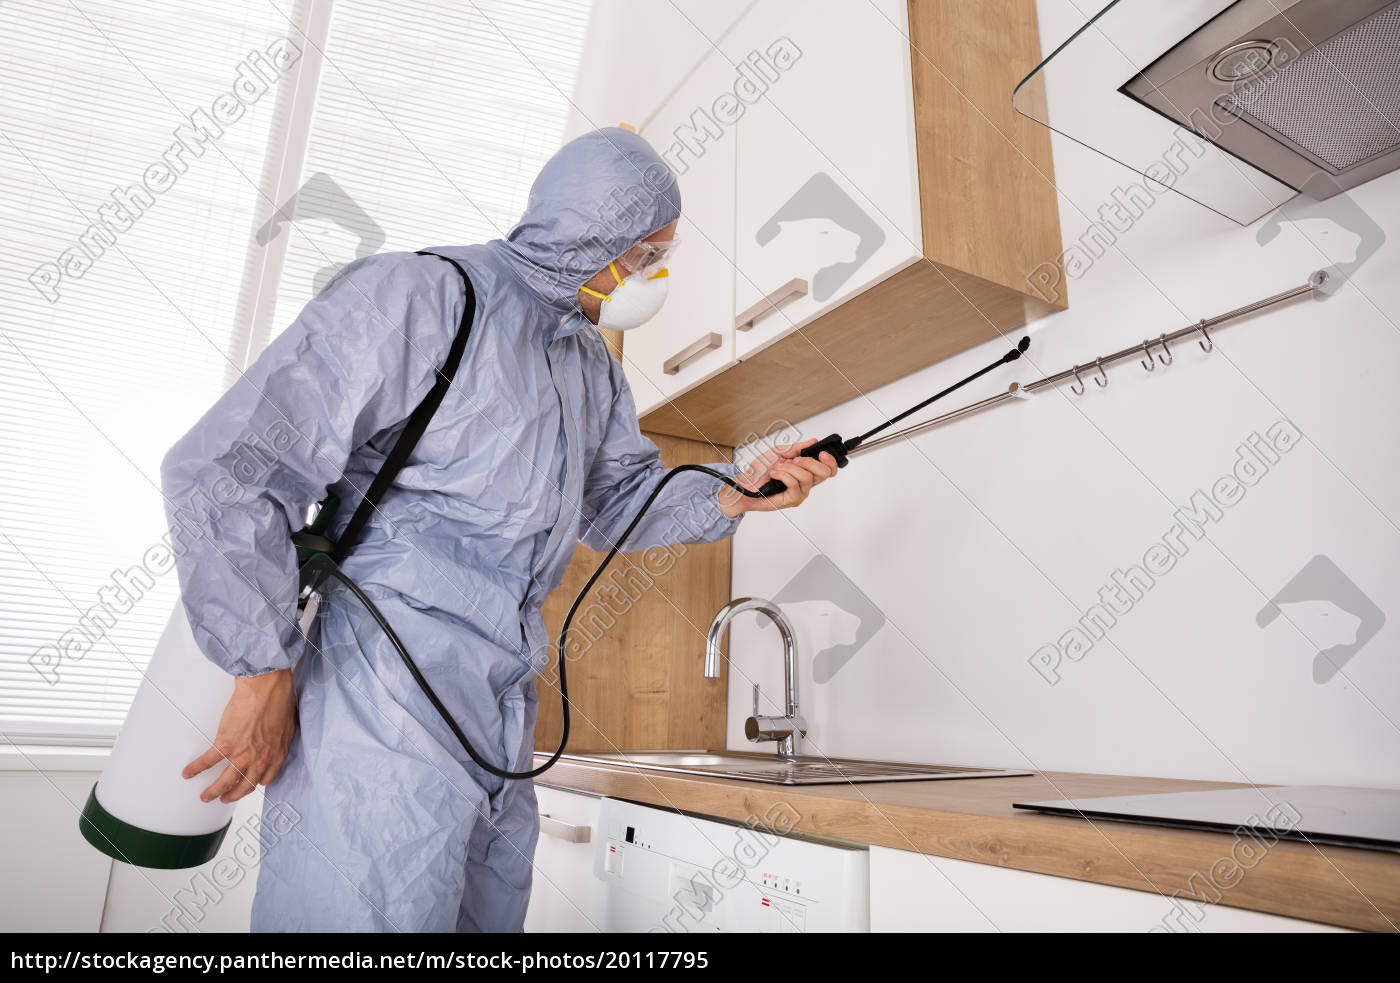 pest, control, worker, spraying, pesticide, in - 20117795